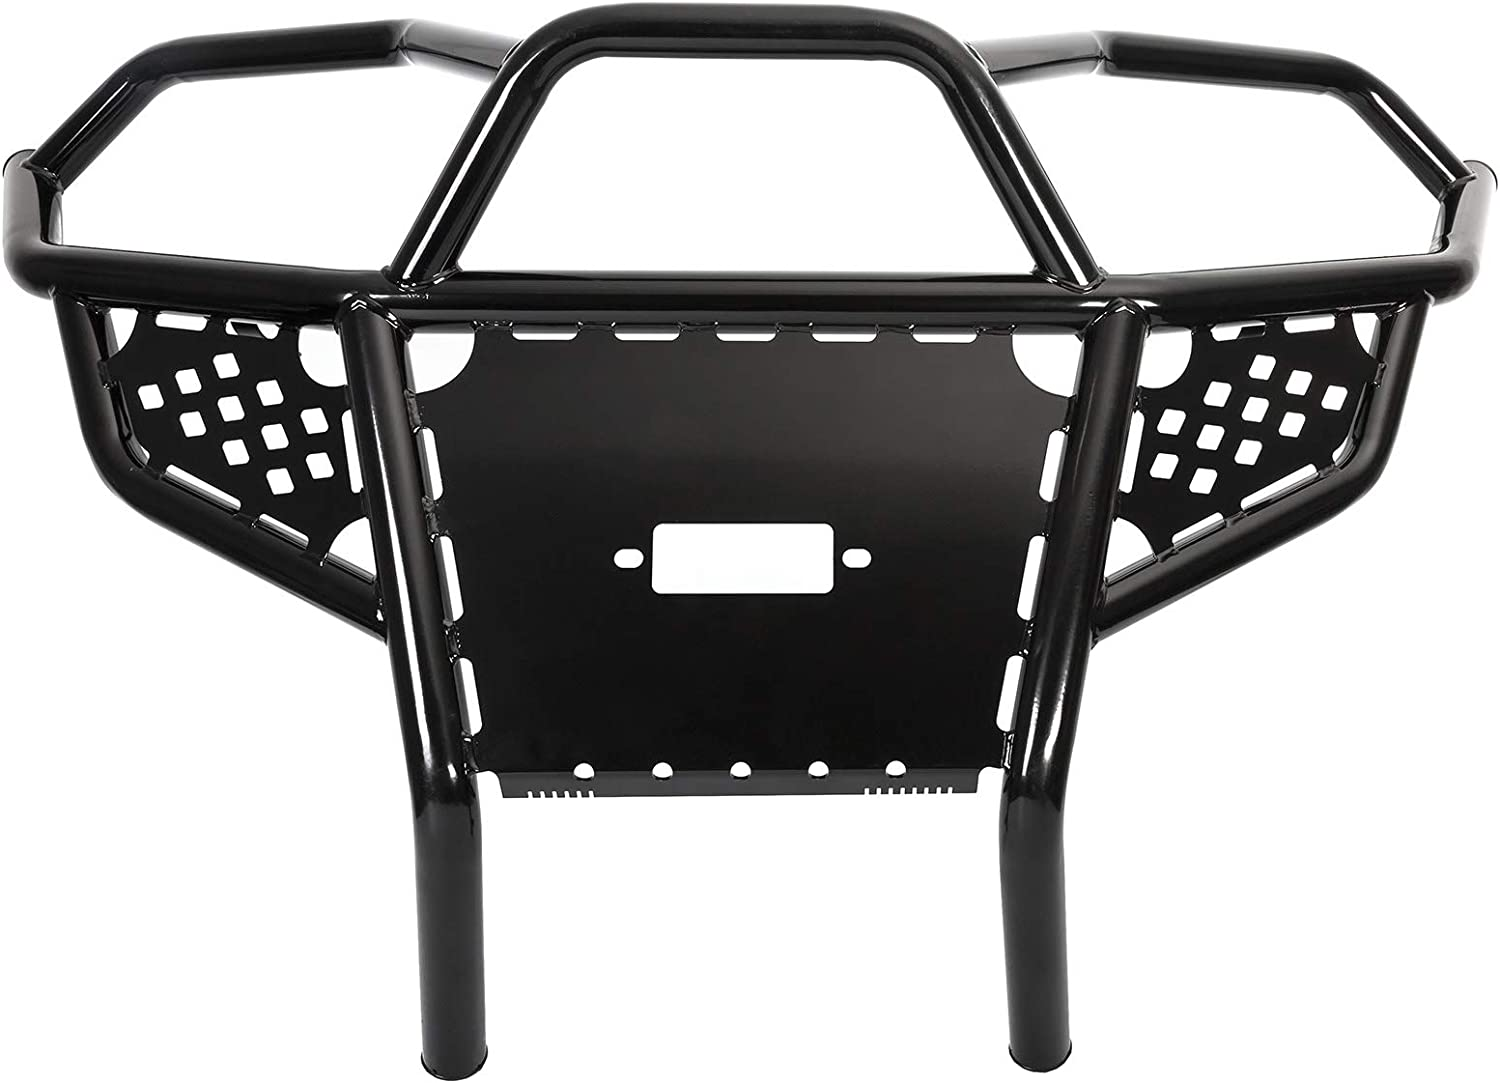 700-4 Honda Pioneer 700-2 2014-2020 UTV Front Bison Bumper Brush Guard Hunter Series